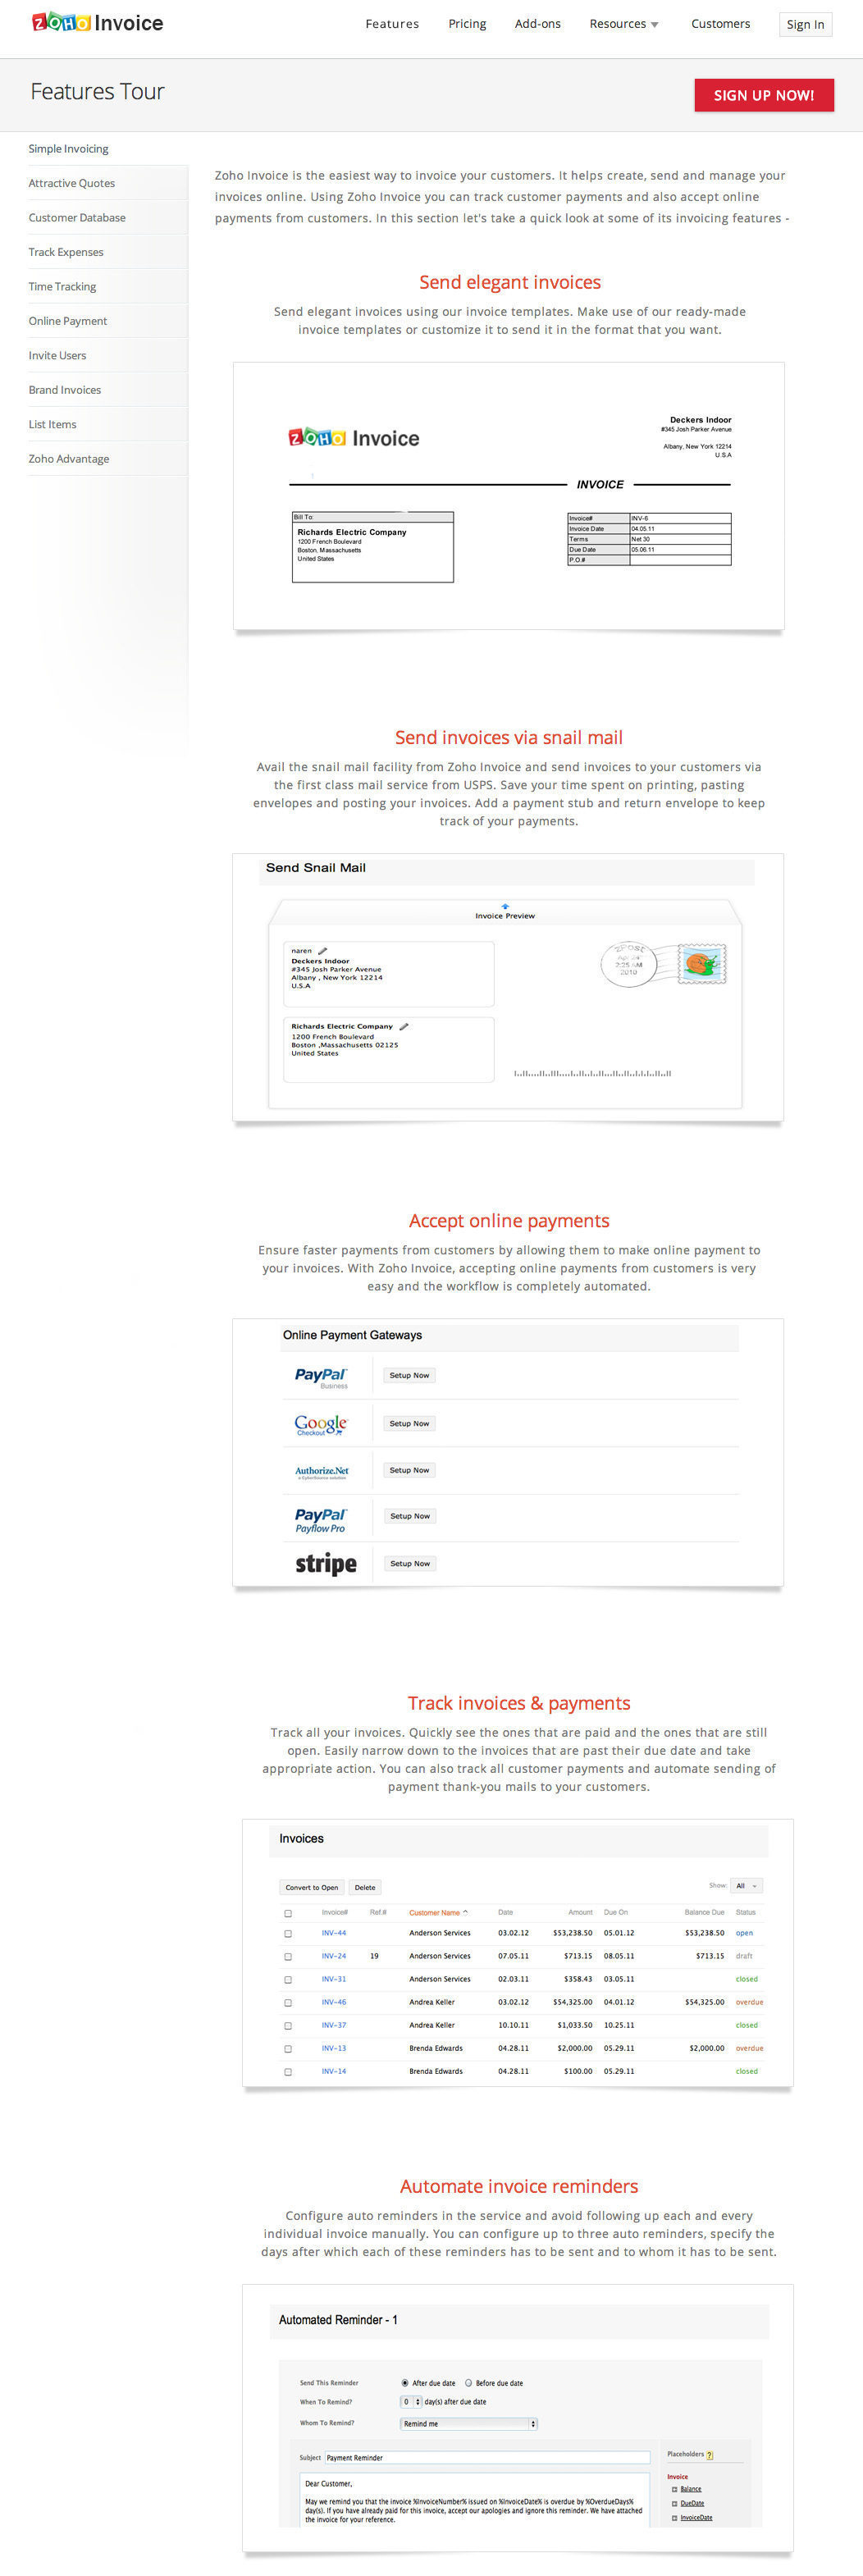 Maidofhonortoastus  Scenic Top  Complaints And Reviews About Zoho Invoice With Inspiring Zoho Invoice Pricing Zoho Invoice  Simple Invoicing  With Awesome Standard Invoice Form Also Timesheet Invoice Template Excel In Addition Invoice Templates Word And Free Invoice Template For Word As Well As Cleaning Service Invoice Additionally When To Invoice A Client From Consumeraffairscom With Maidofhonortoastus  Inspiring Top  Complaints And Reviews About Zoho Invoice With Awesome Zoho Invoice Pricing Zoho Invoice  Simple Invoicing  And Scenic Standard Invoice Form Also Timesheet Invoice Template Excel In Addition Invoice Templates Word From Consumeraffairscom